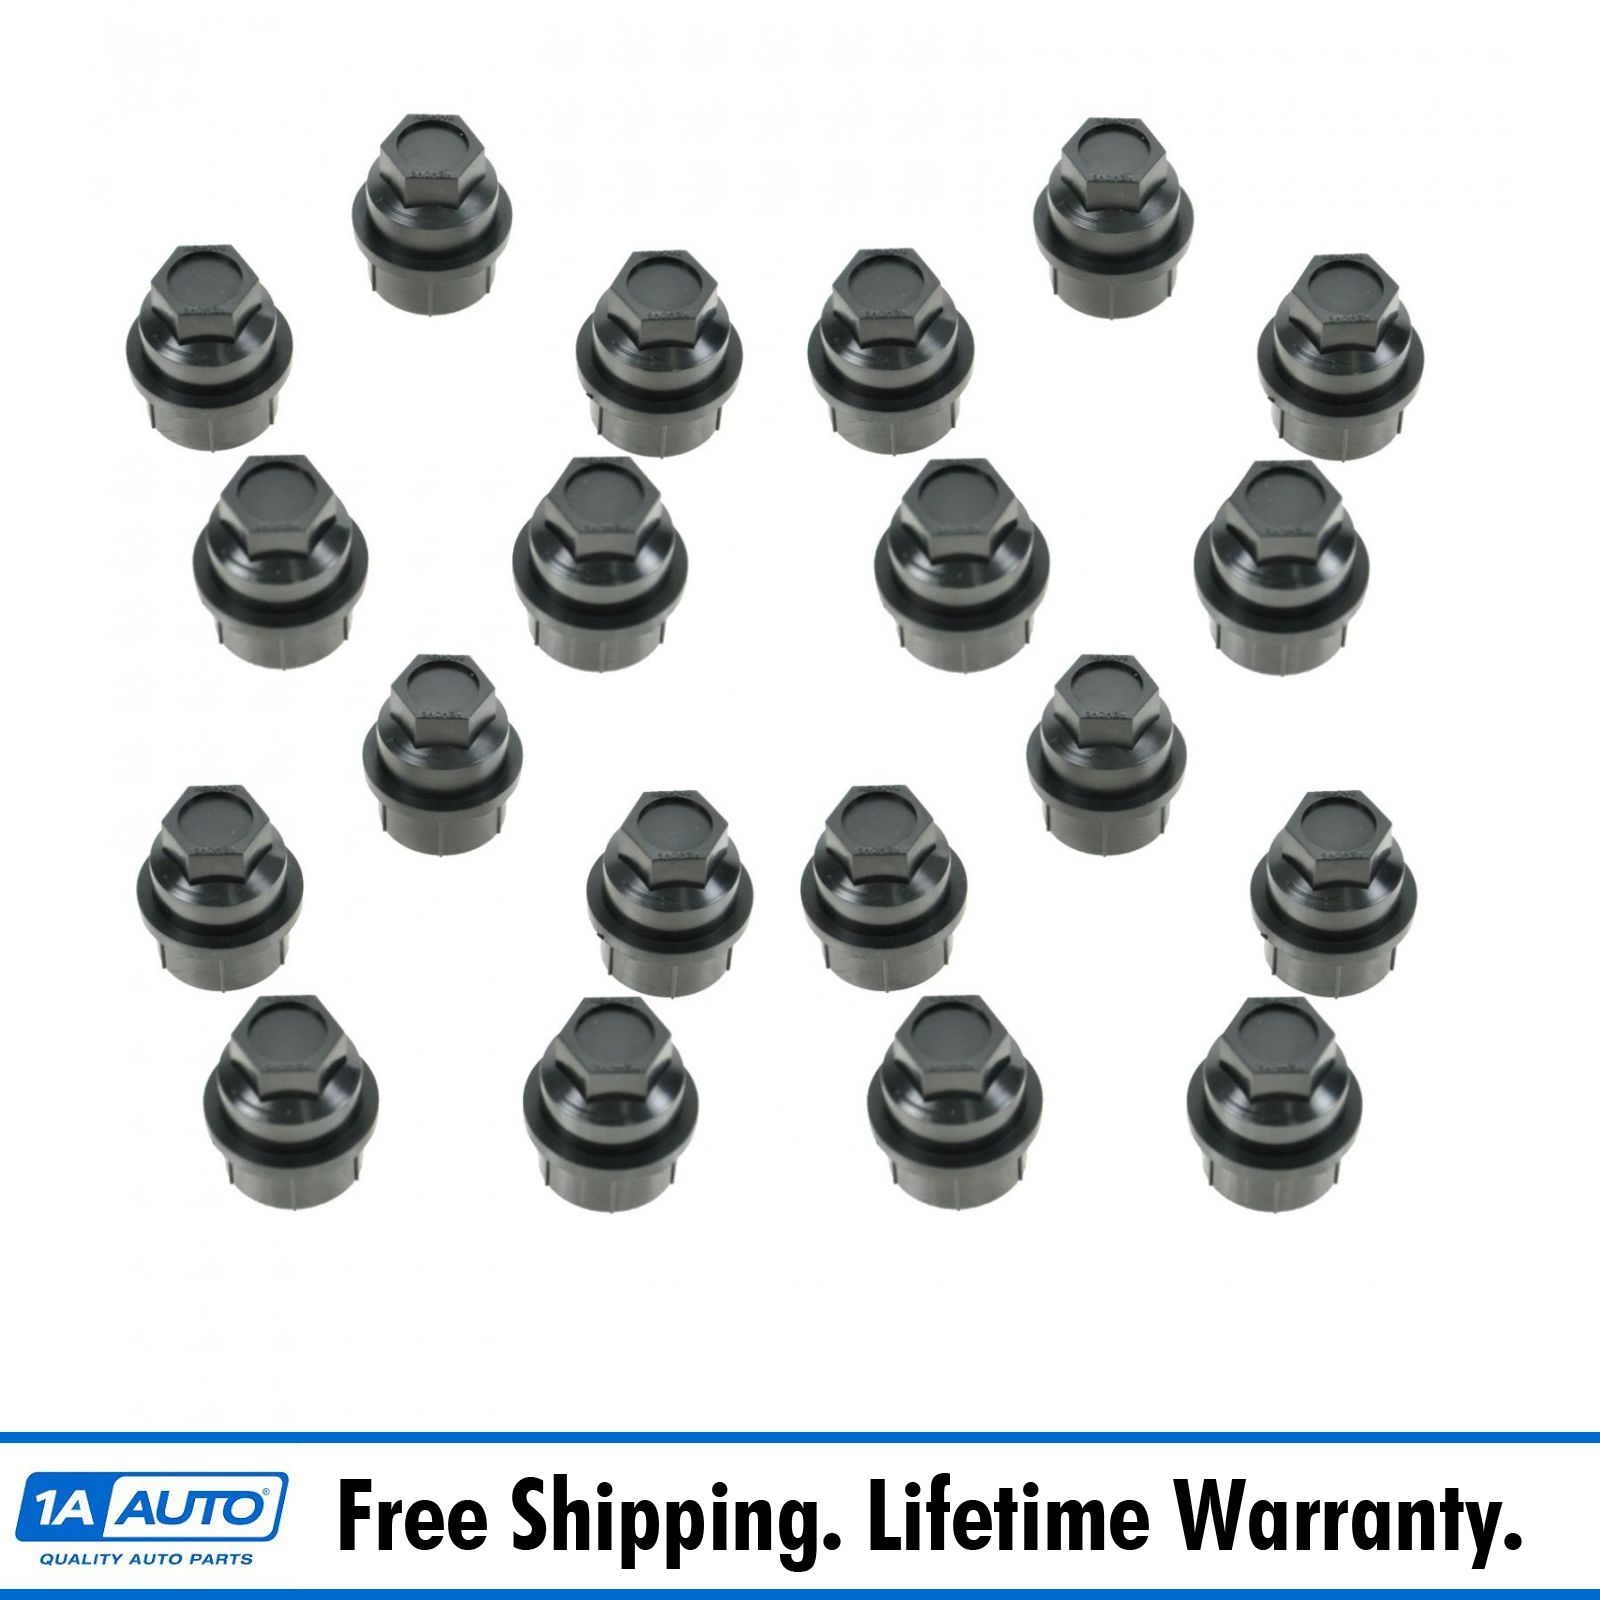 Dorman Wheel Lug Nut Cap Black Plastic Kit Set of 5 for Chevy GMC Cadillac